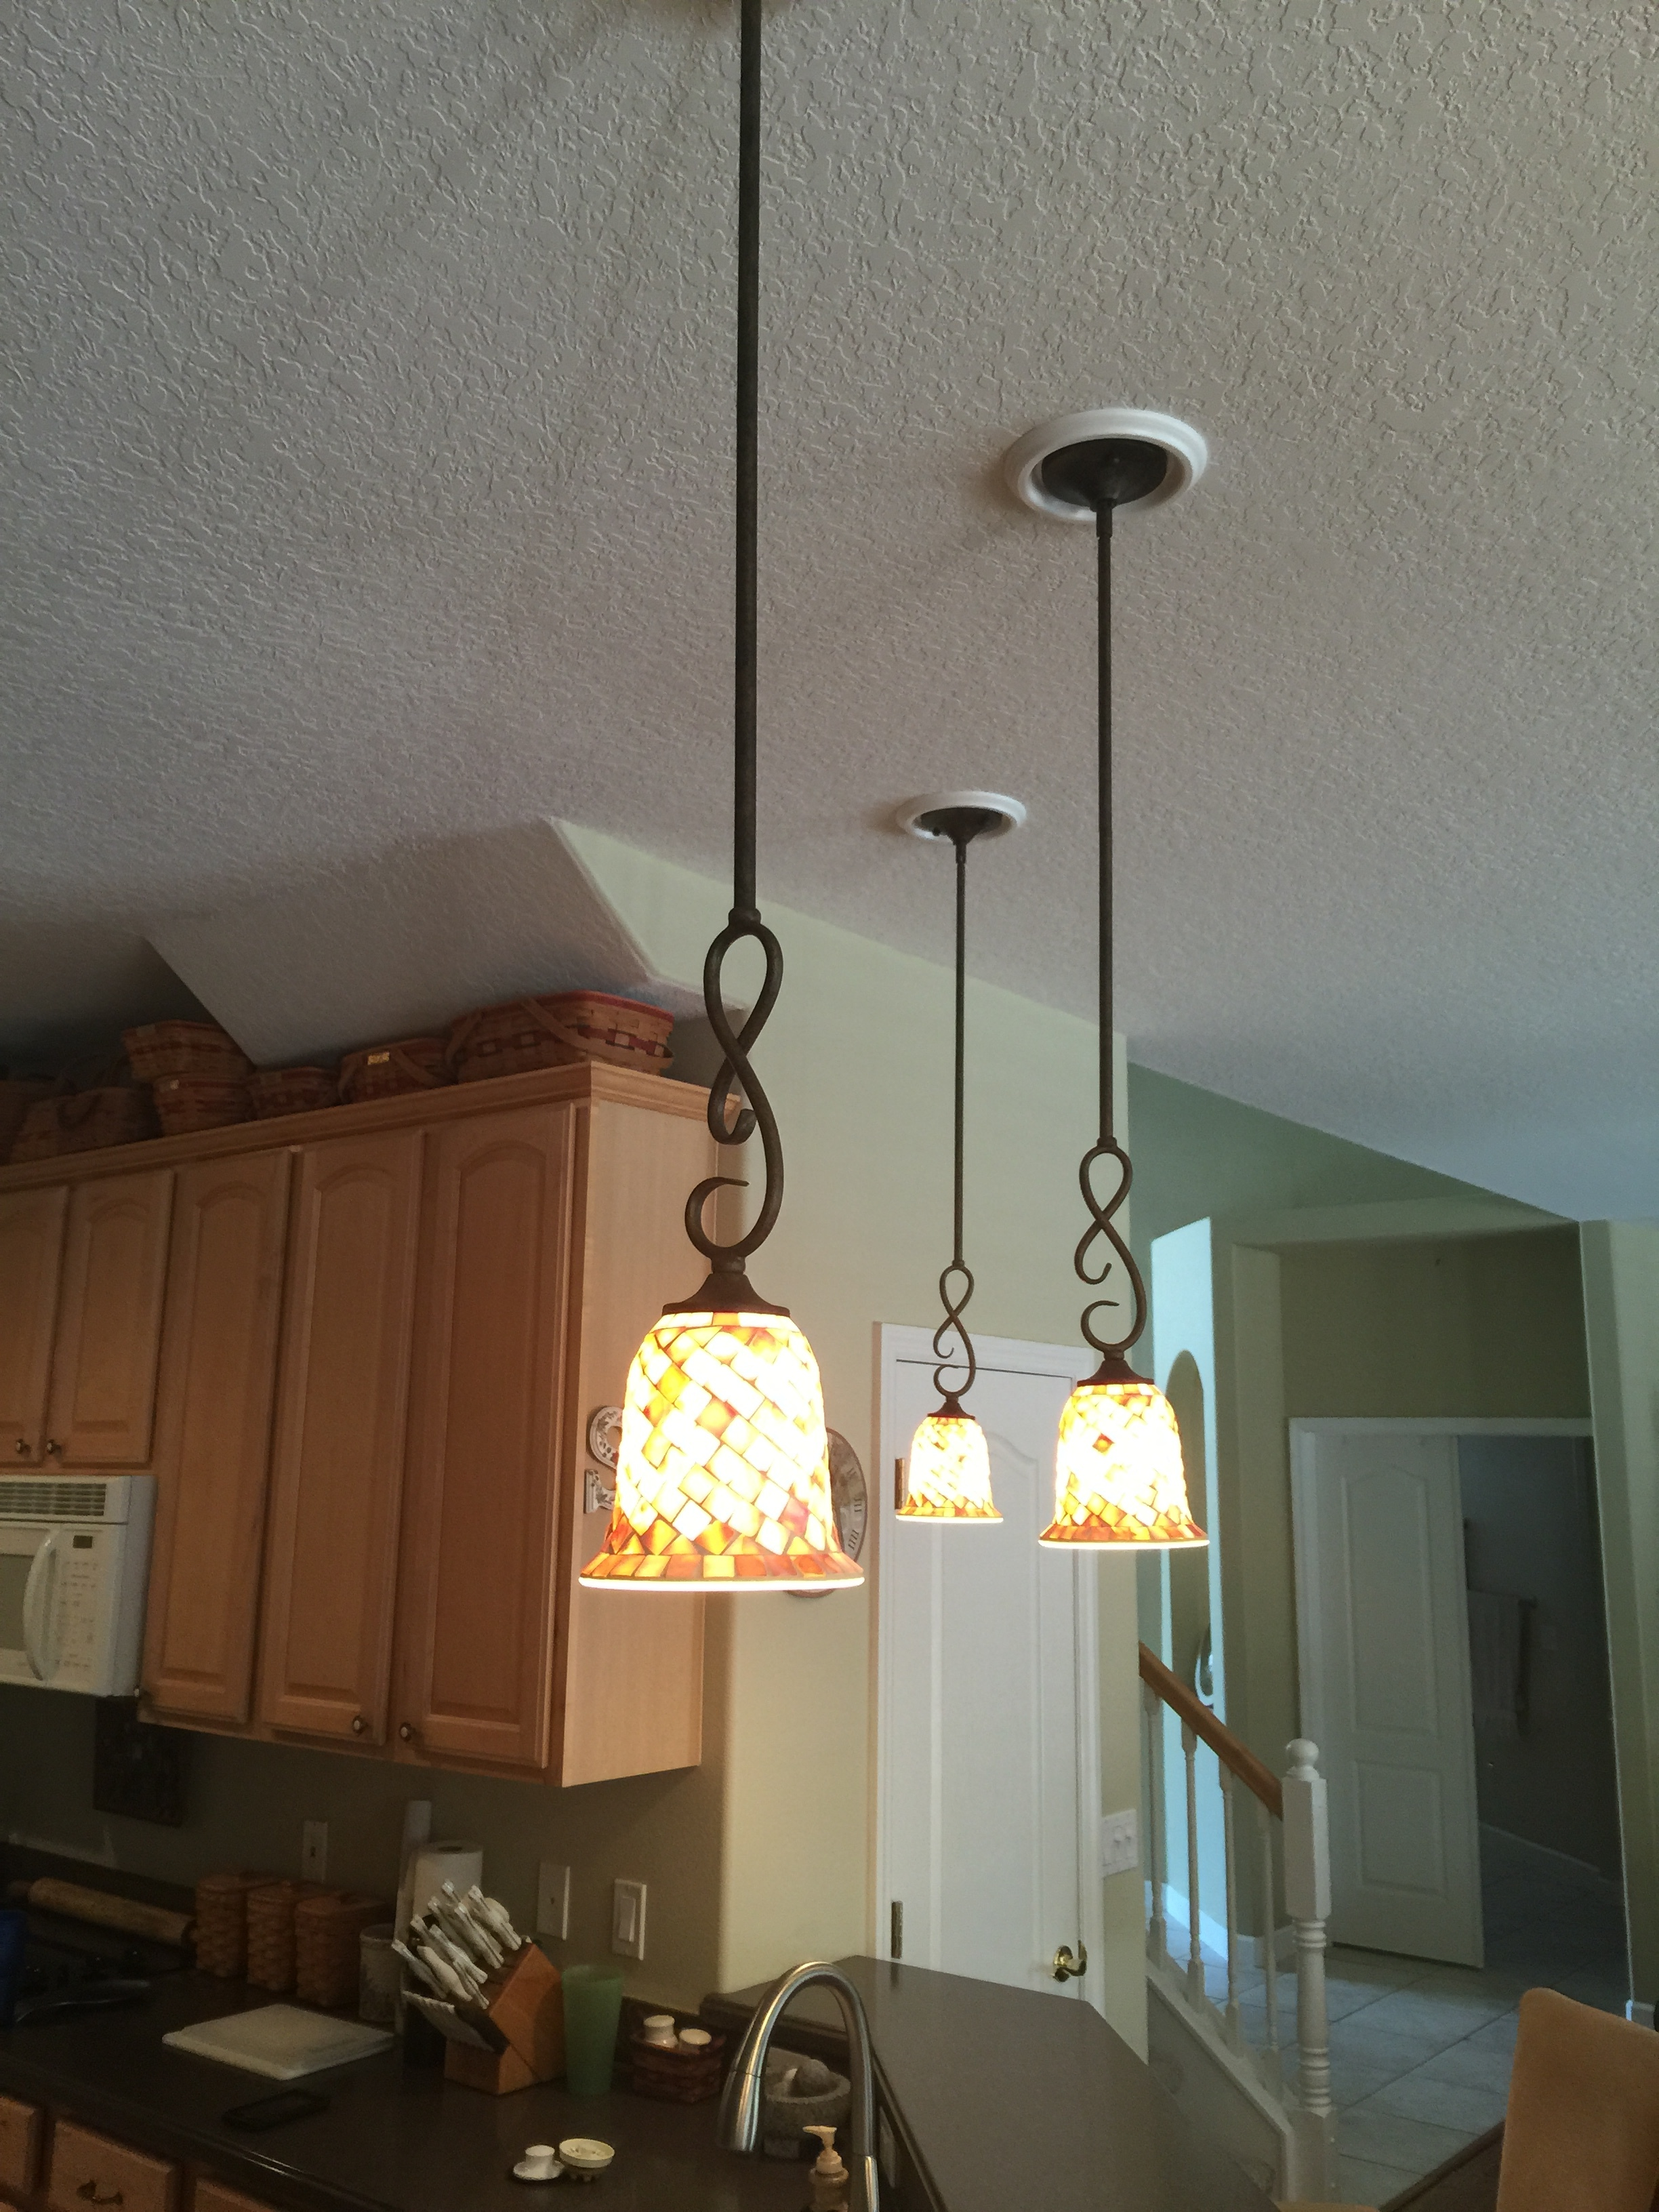 Recess cans converted into pendant lights.